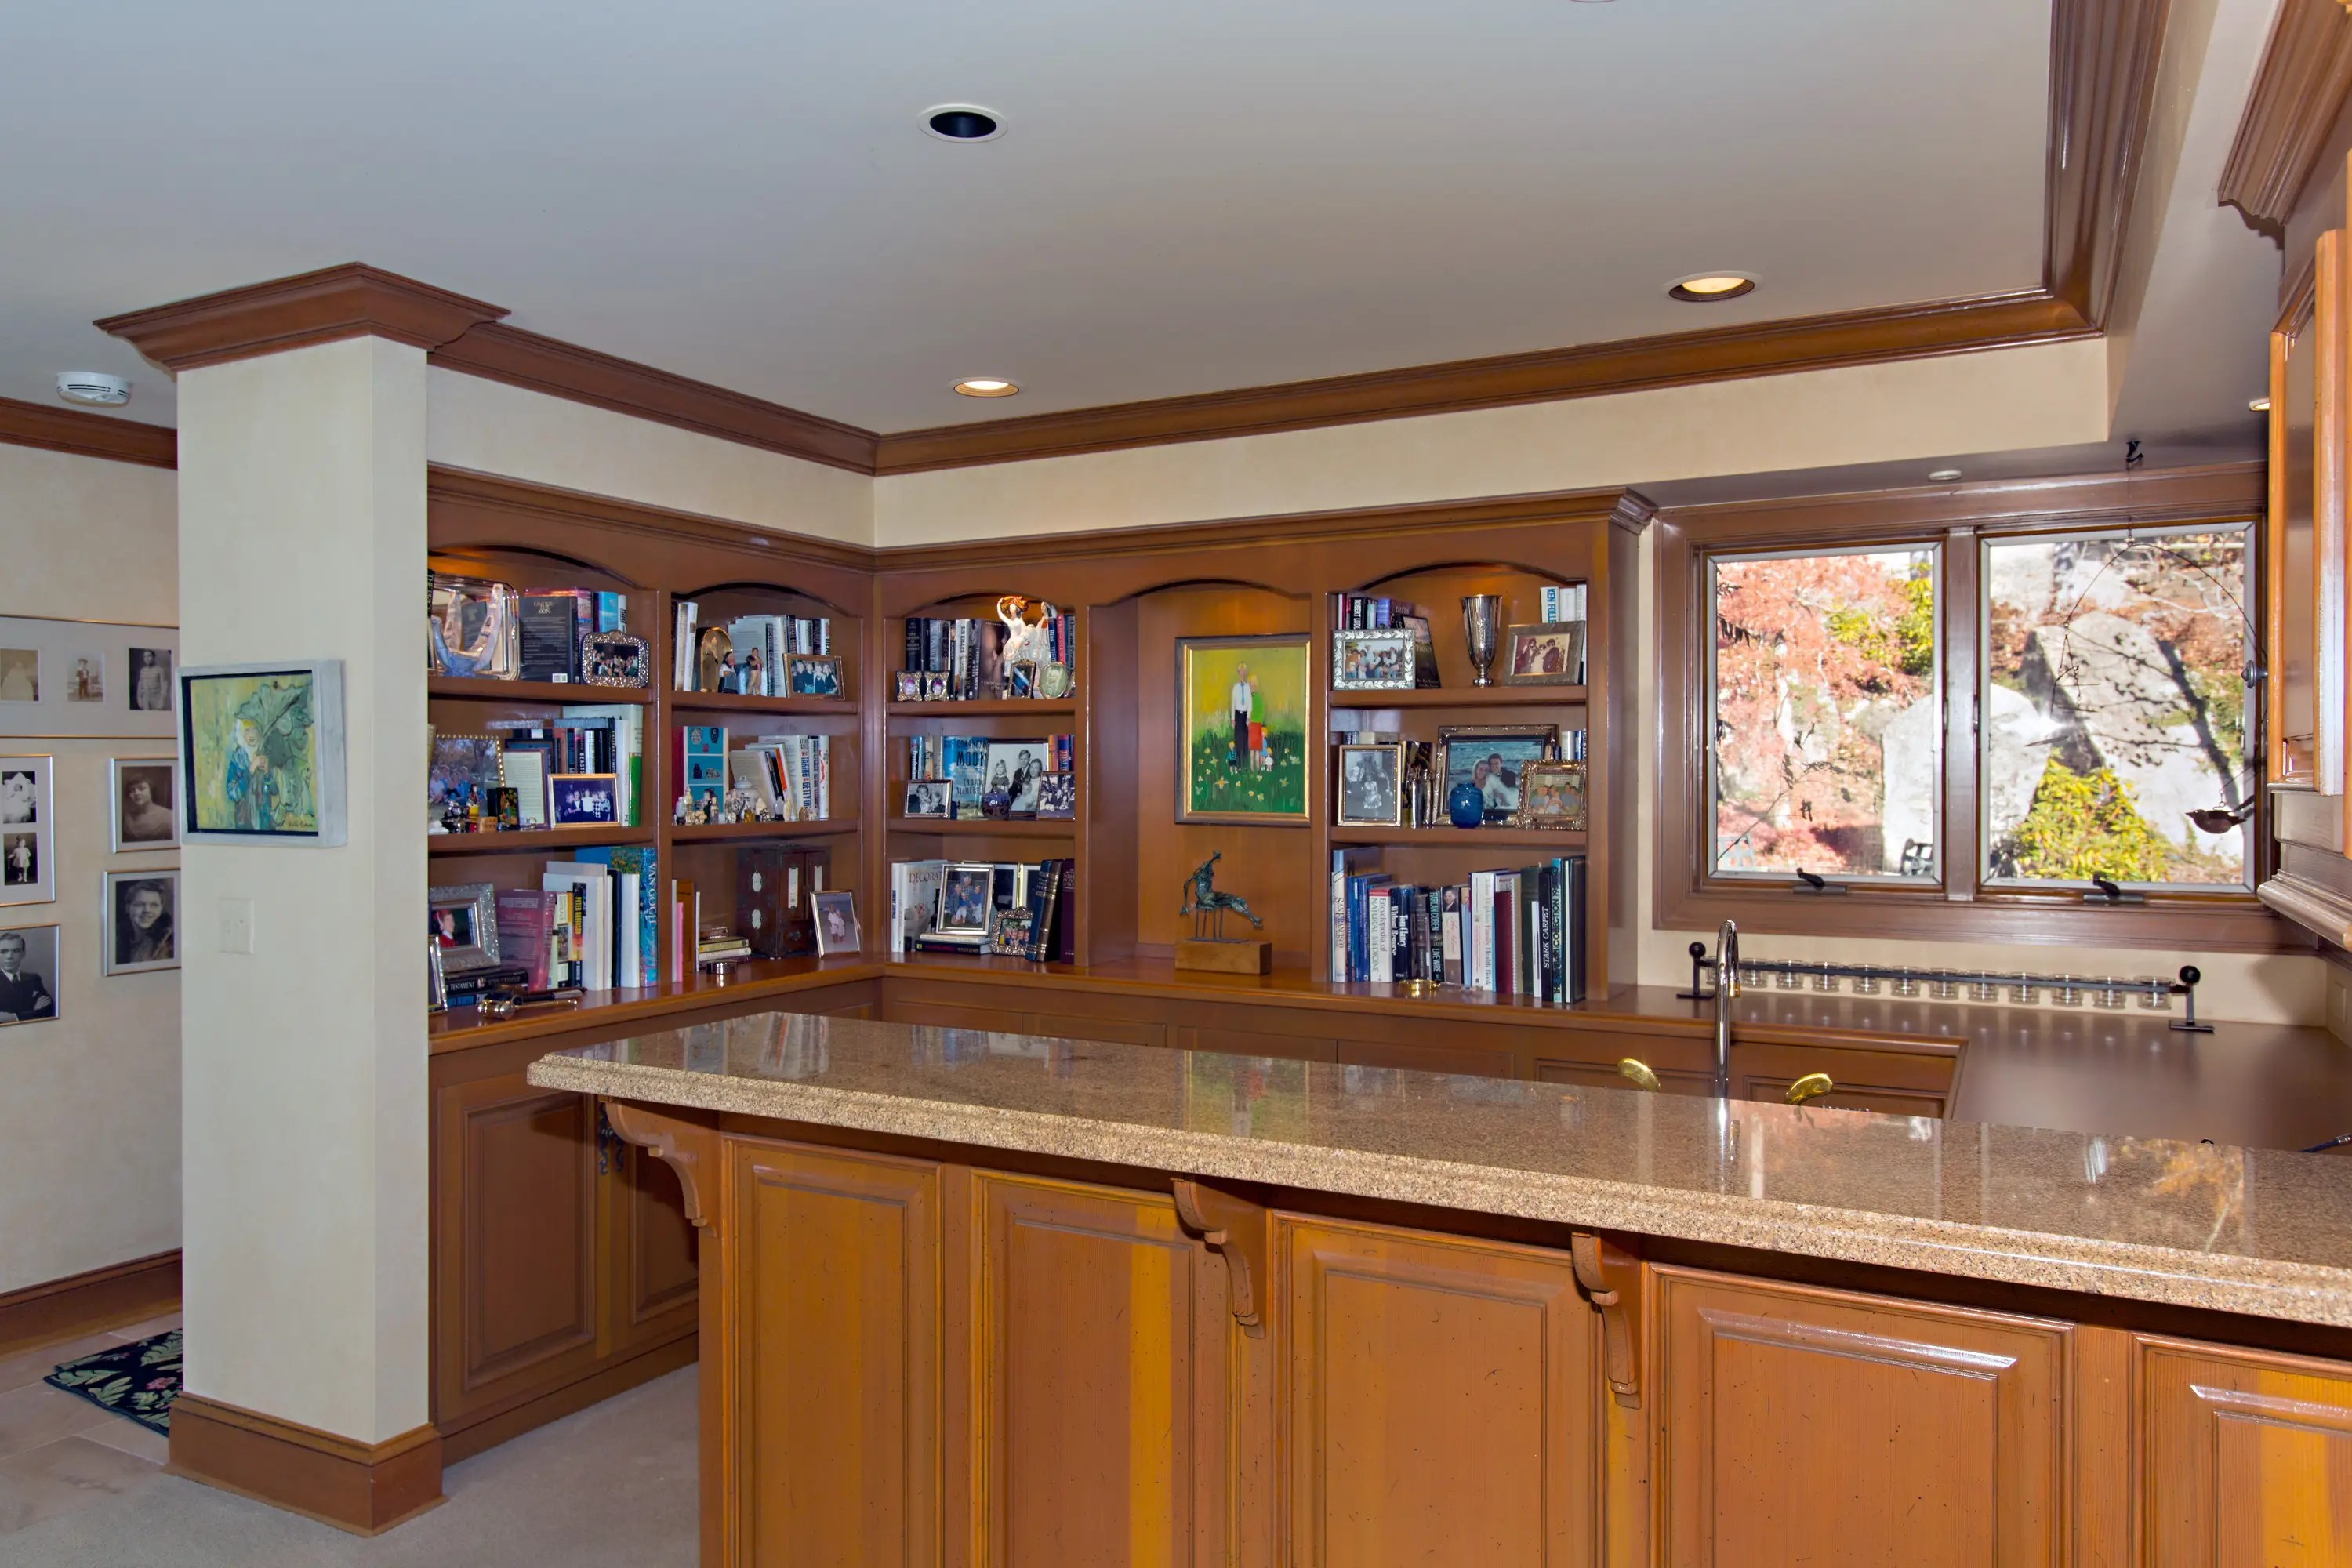 The house includes a wet bar in the basement.